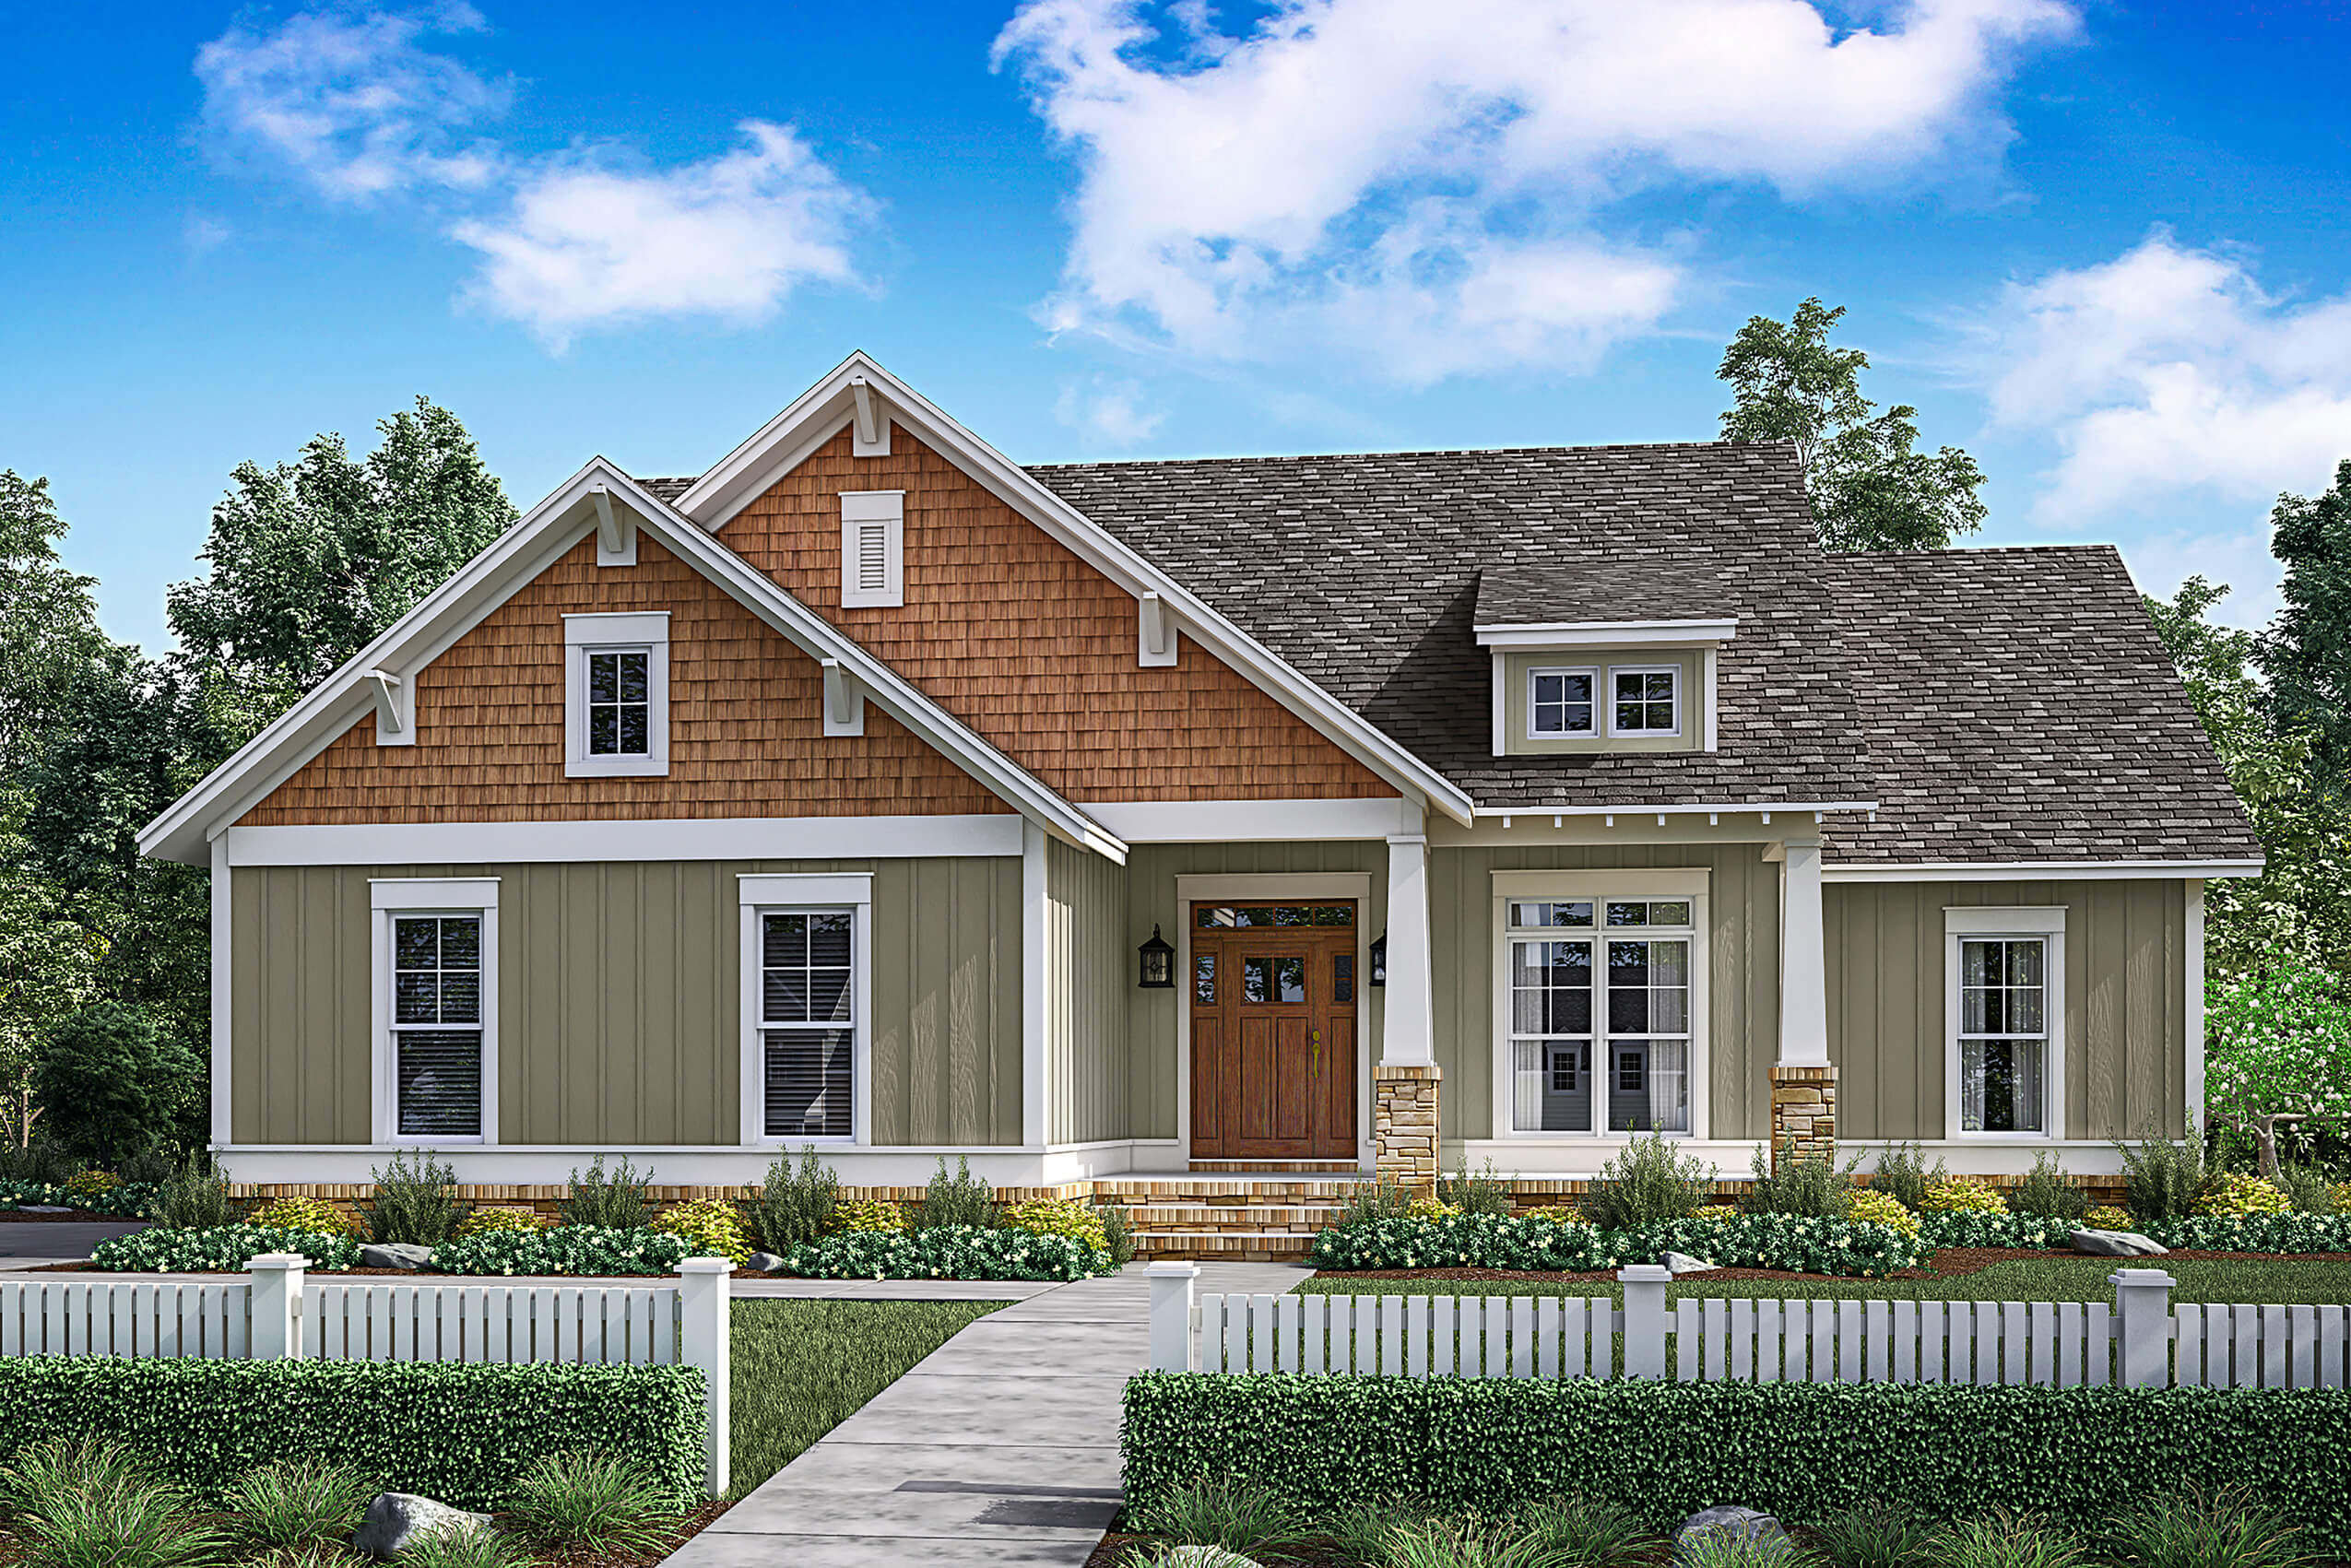 3 Bedrm 1657 Sq Ft Traditional House Plan 1421176